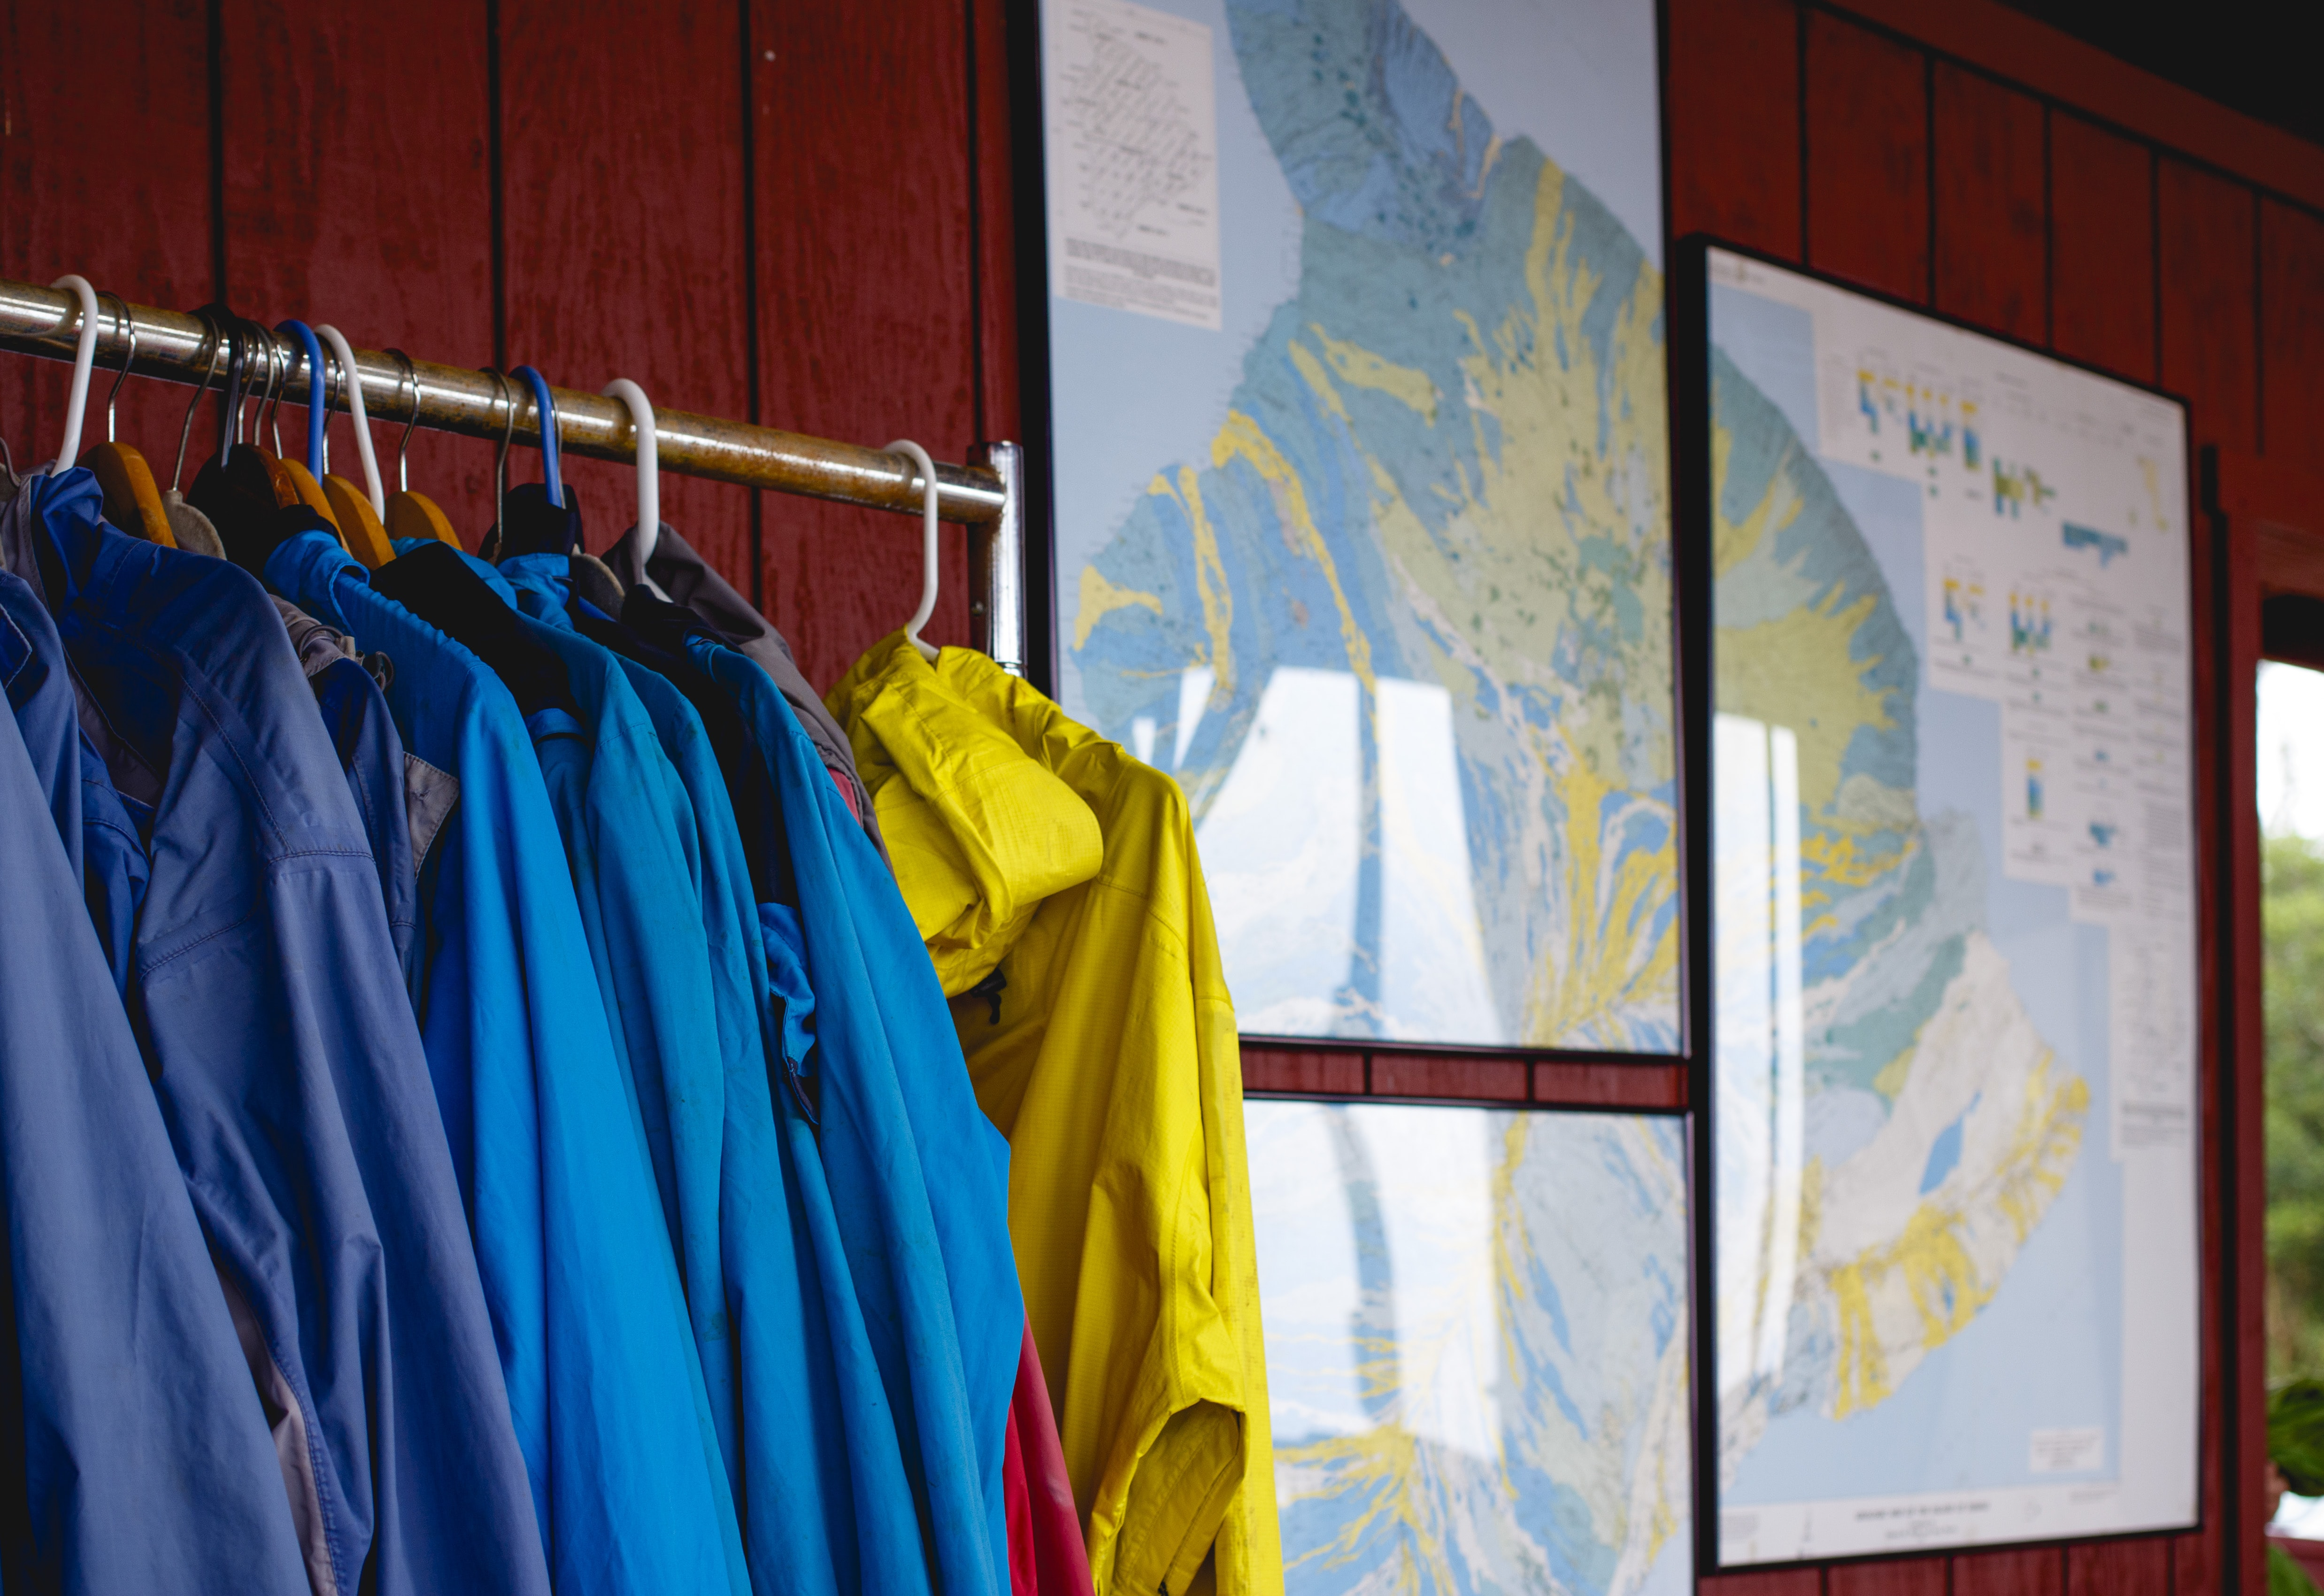 A rack of raincoats next to several framed maps hanging on a red paneled wall